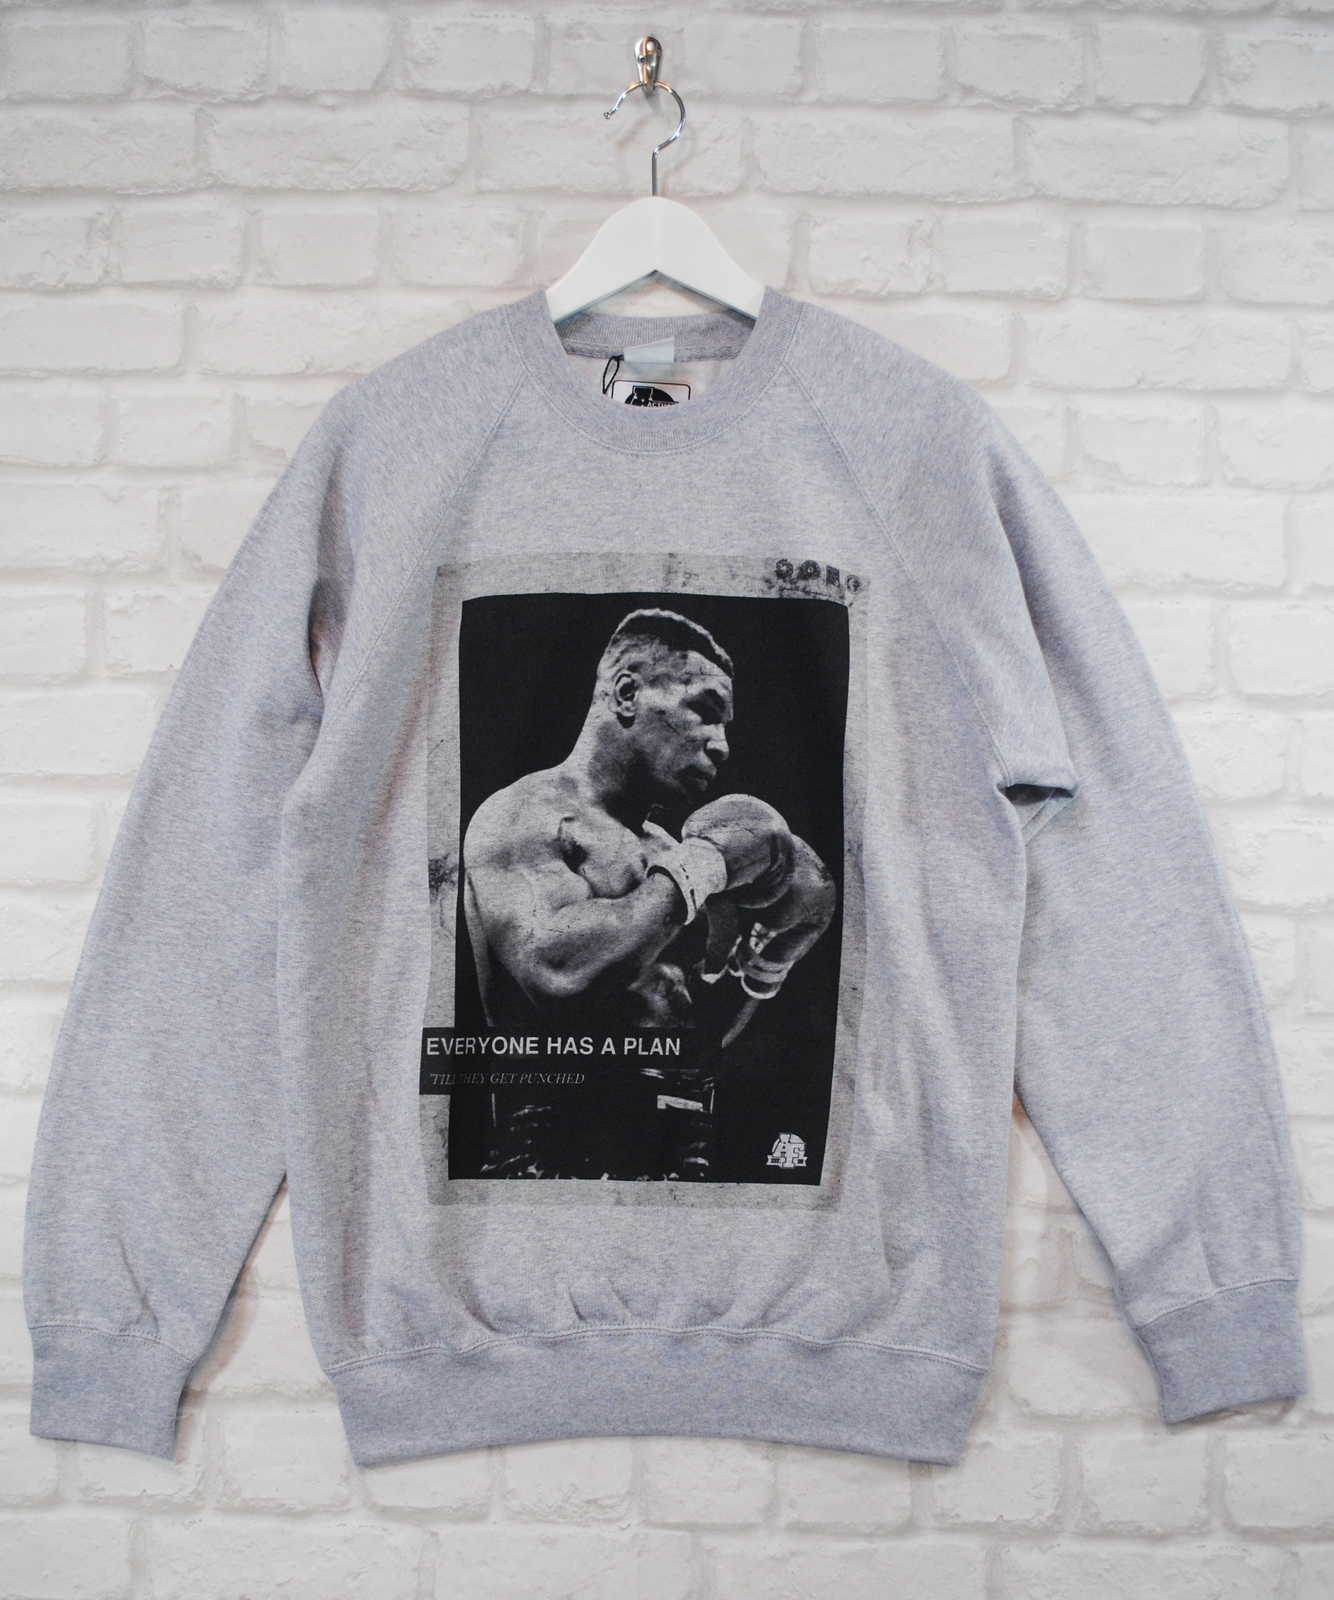 Actual Fact Mike Tyson Plan Boxing Premium Grey Crew Neck Sweatshirt Jumper, used for sale  USA